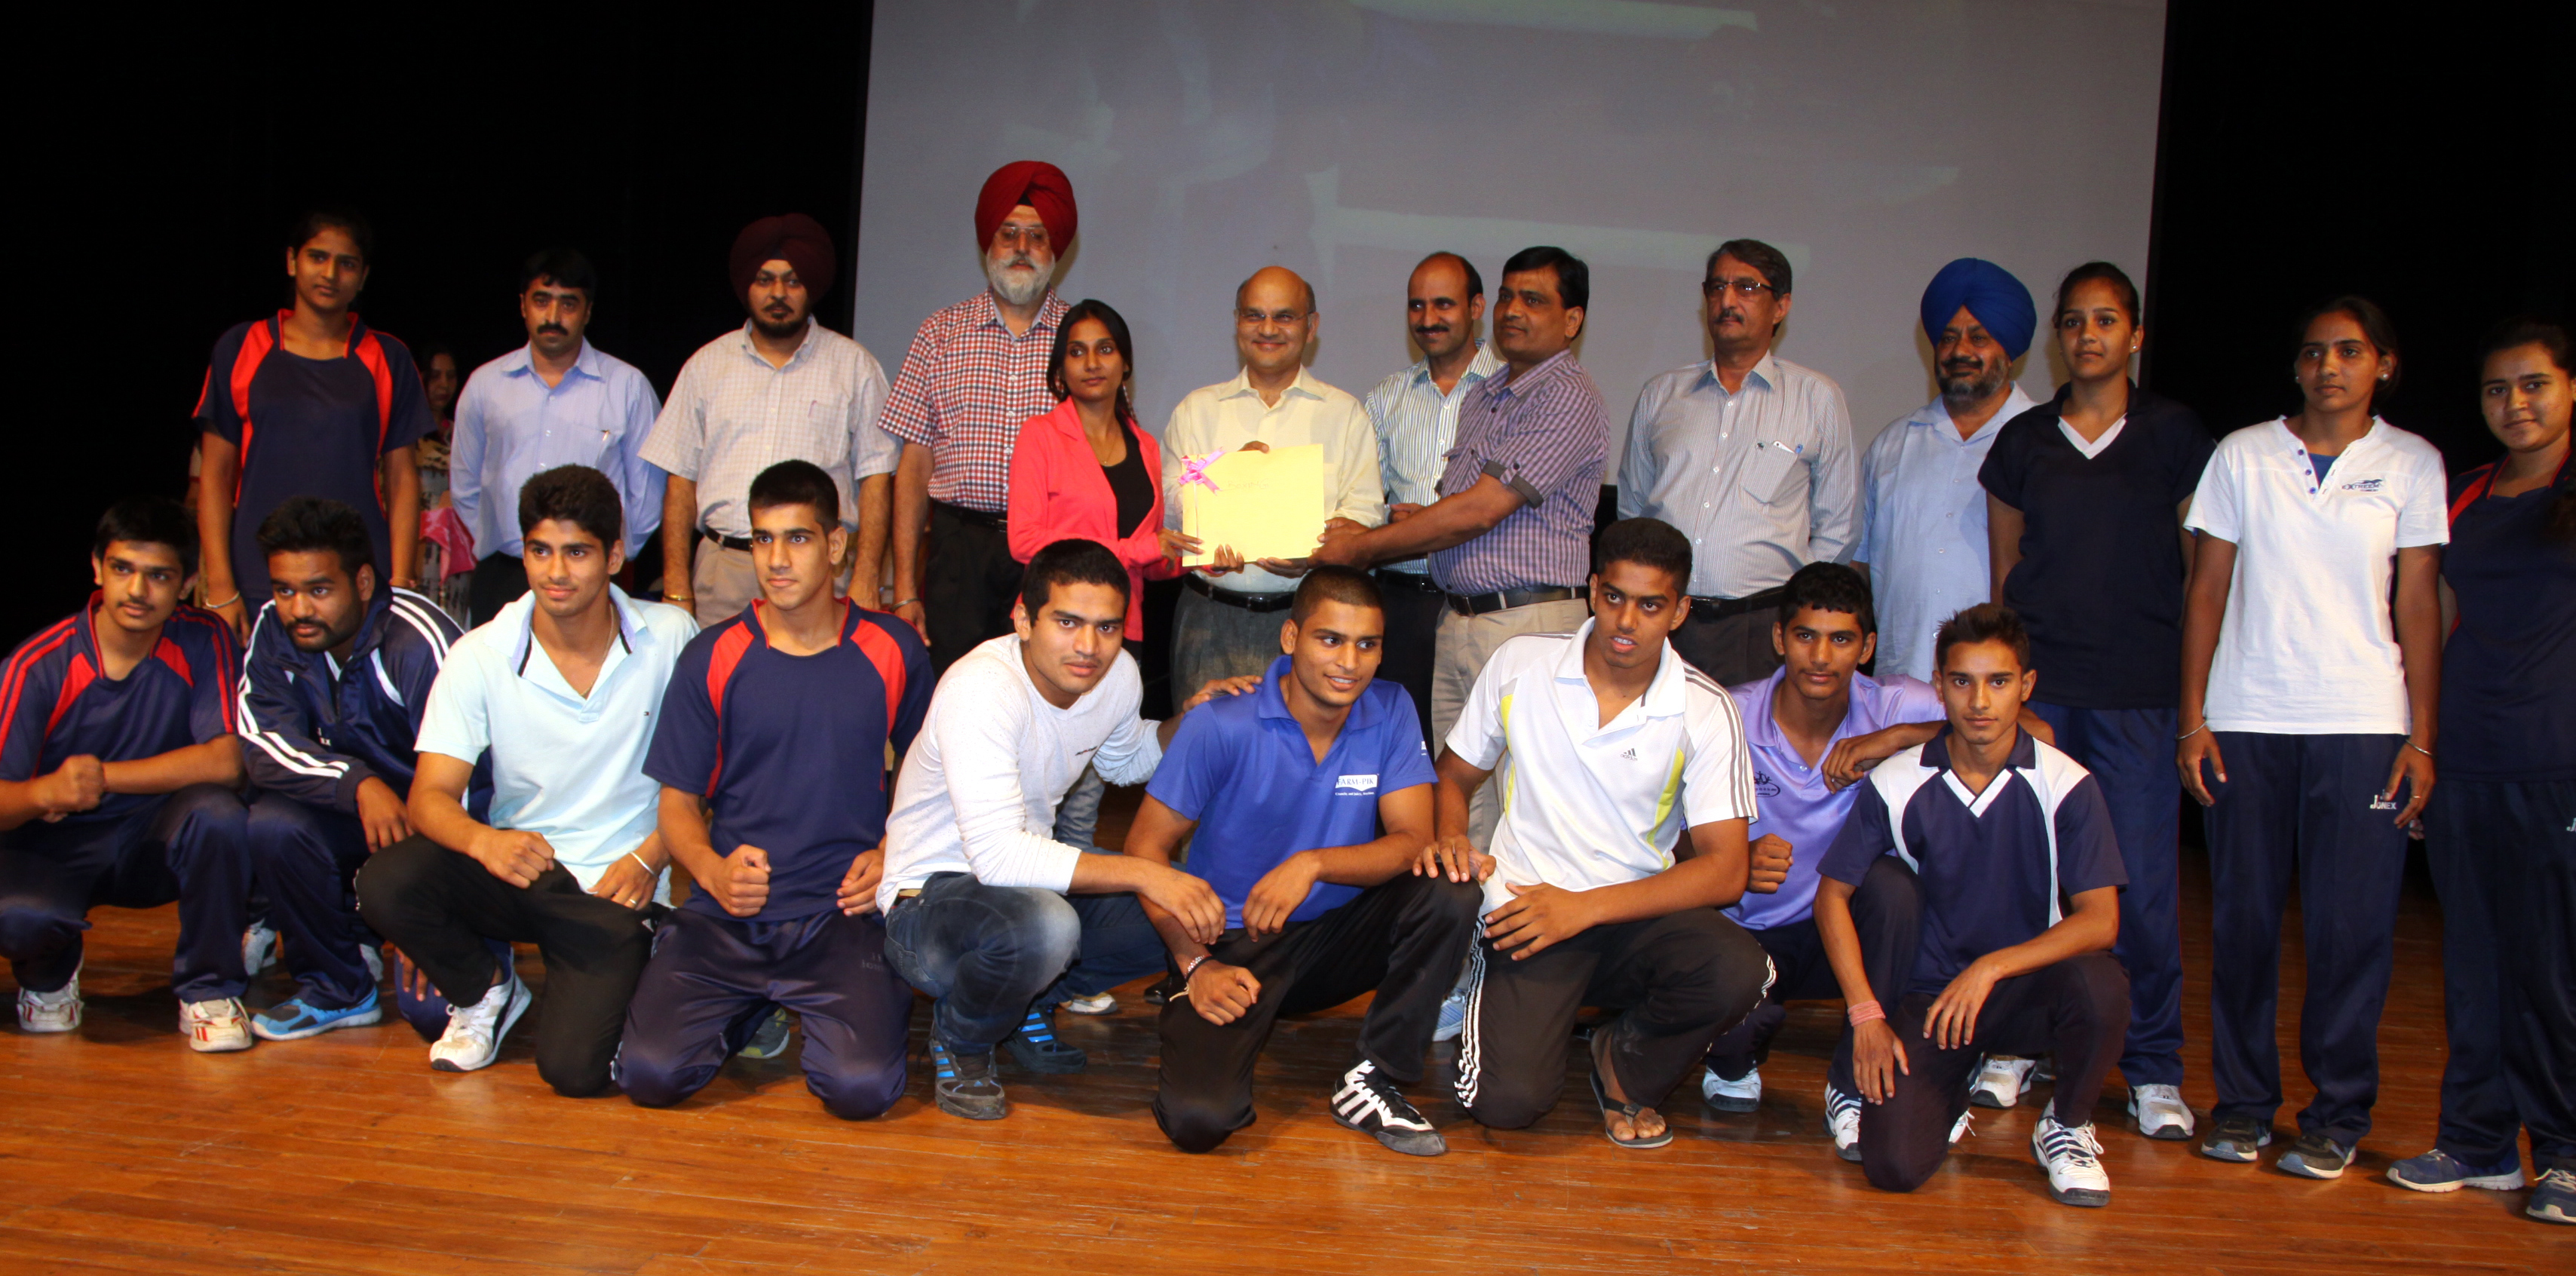 The Adviser to the Administrator, UT, Chandigarh, Mr. K.K. Sharma honoring the outstanding sports persons on the occasion of National Sports Day-2014 at Tagore Theatre, Sector-18, Chandigarh on Friday, August 29, 2014.